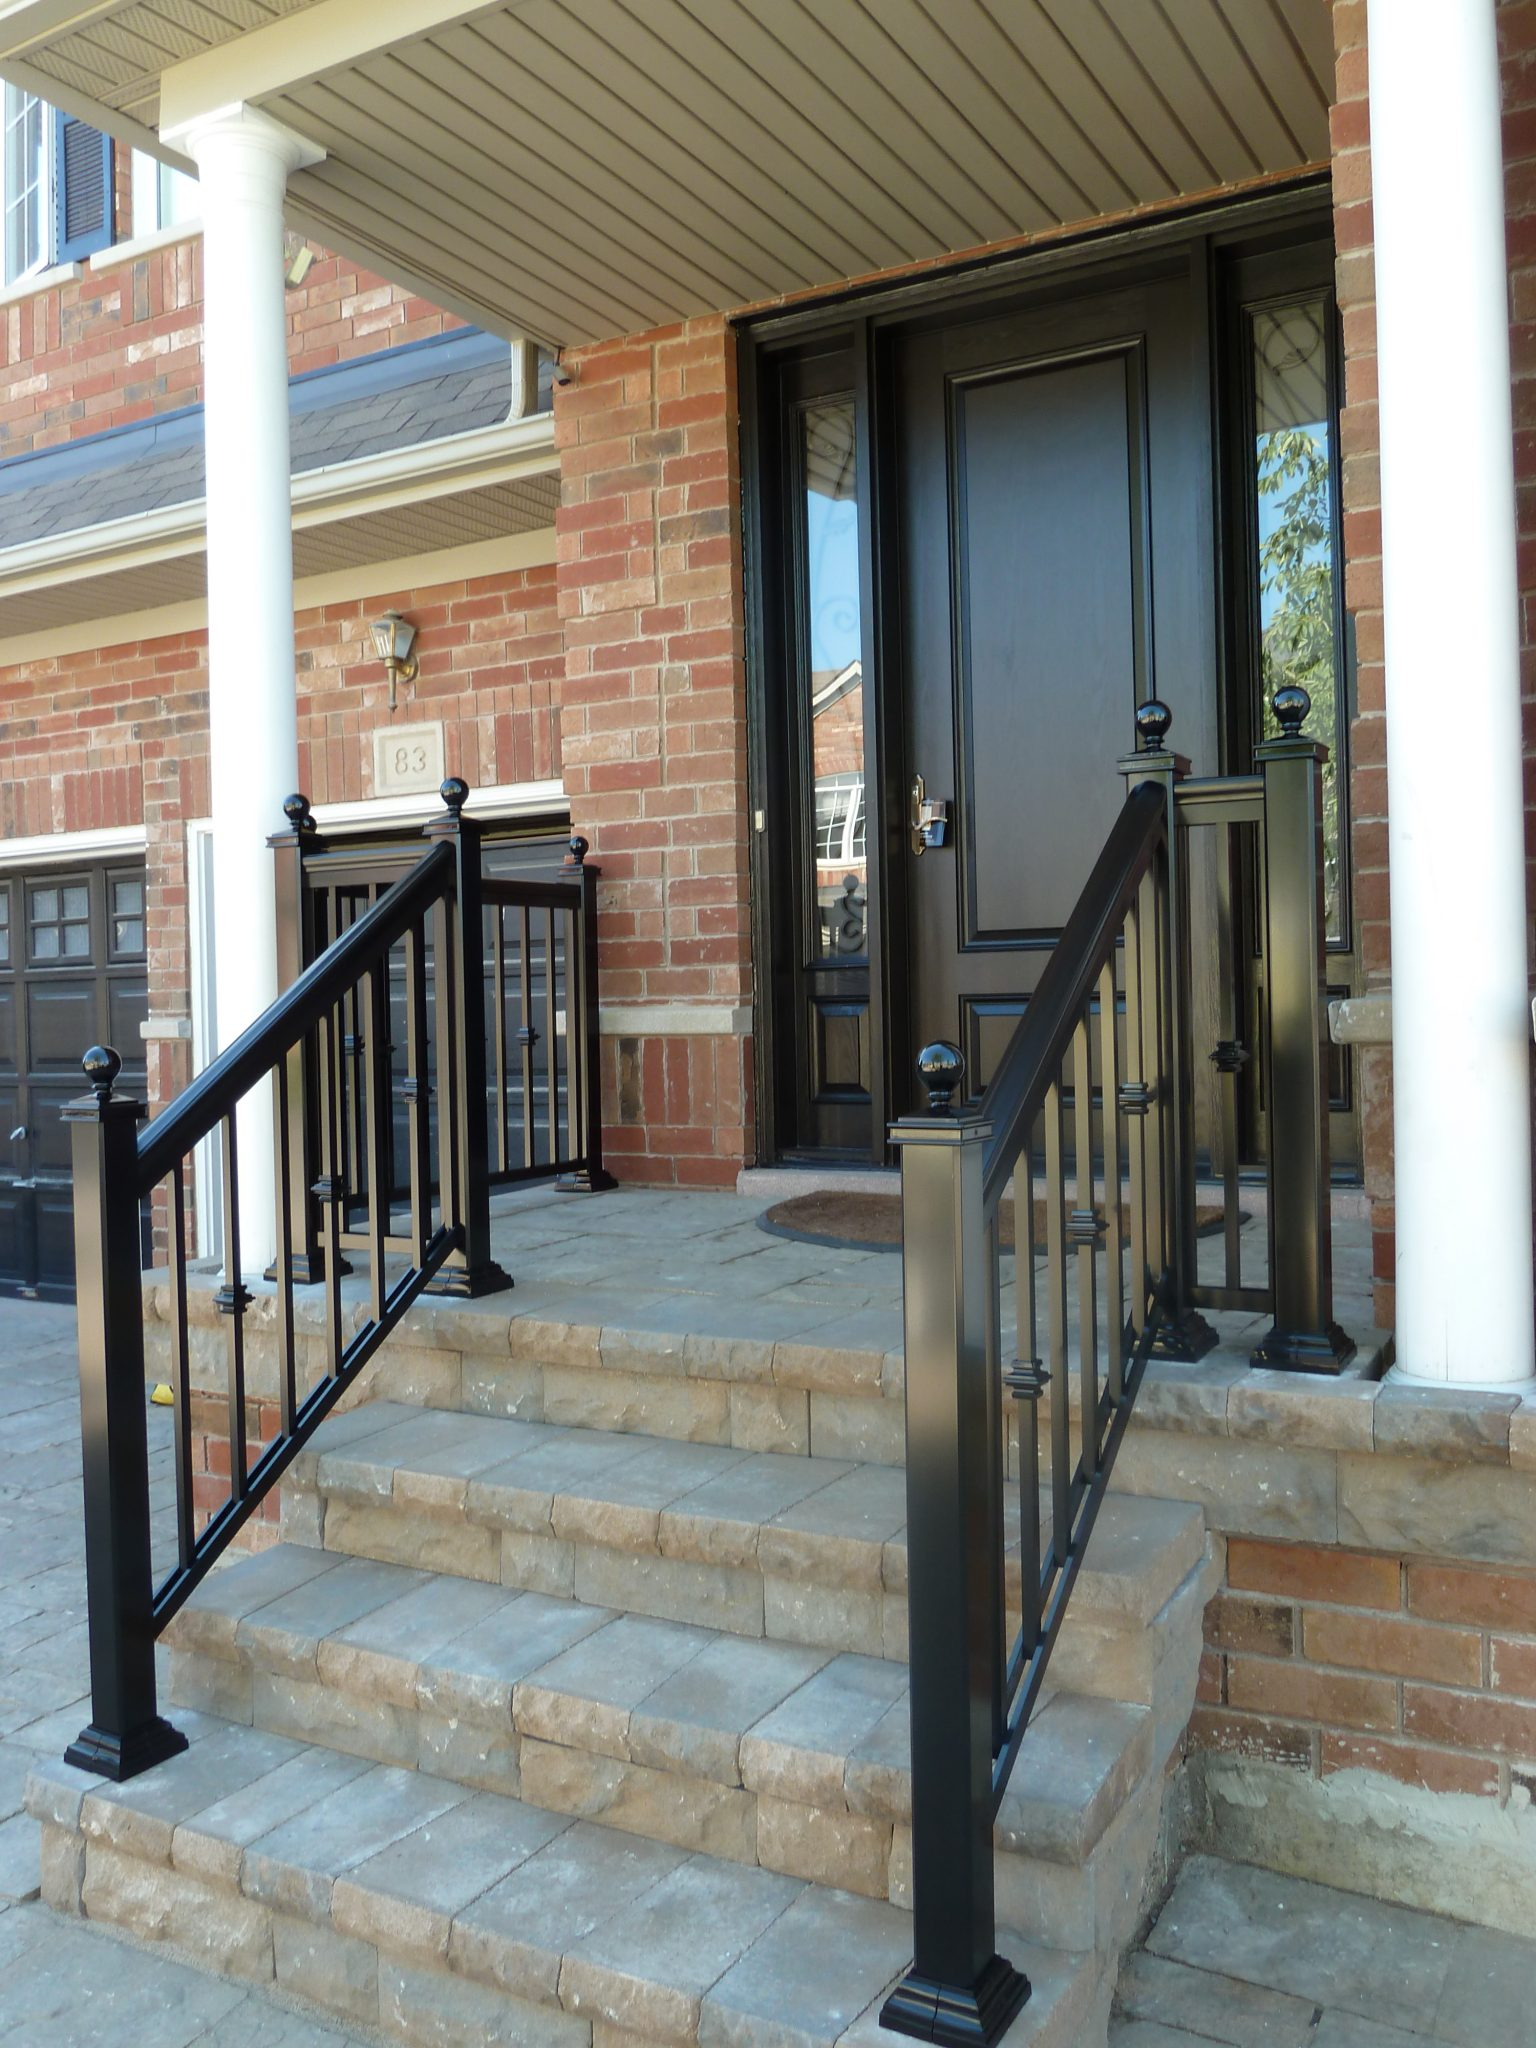 Out front railings